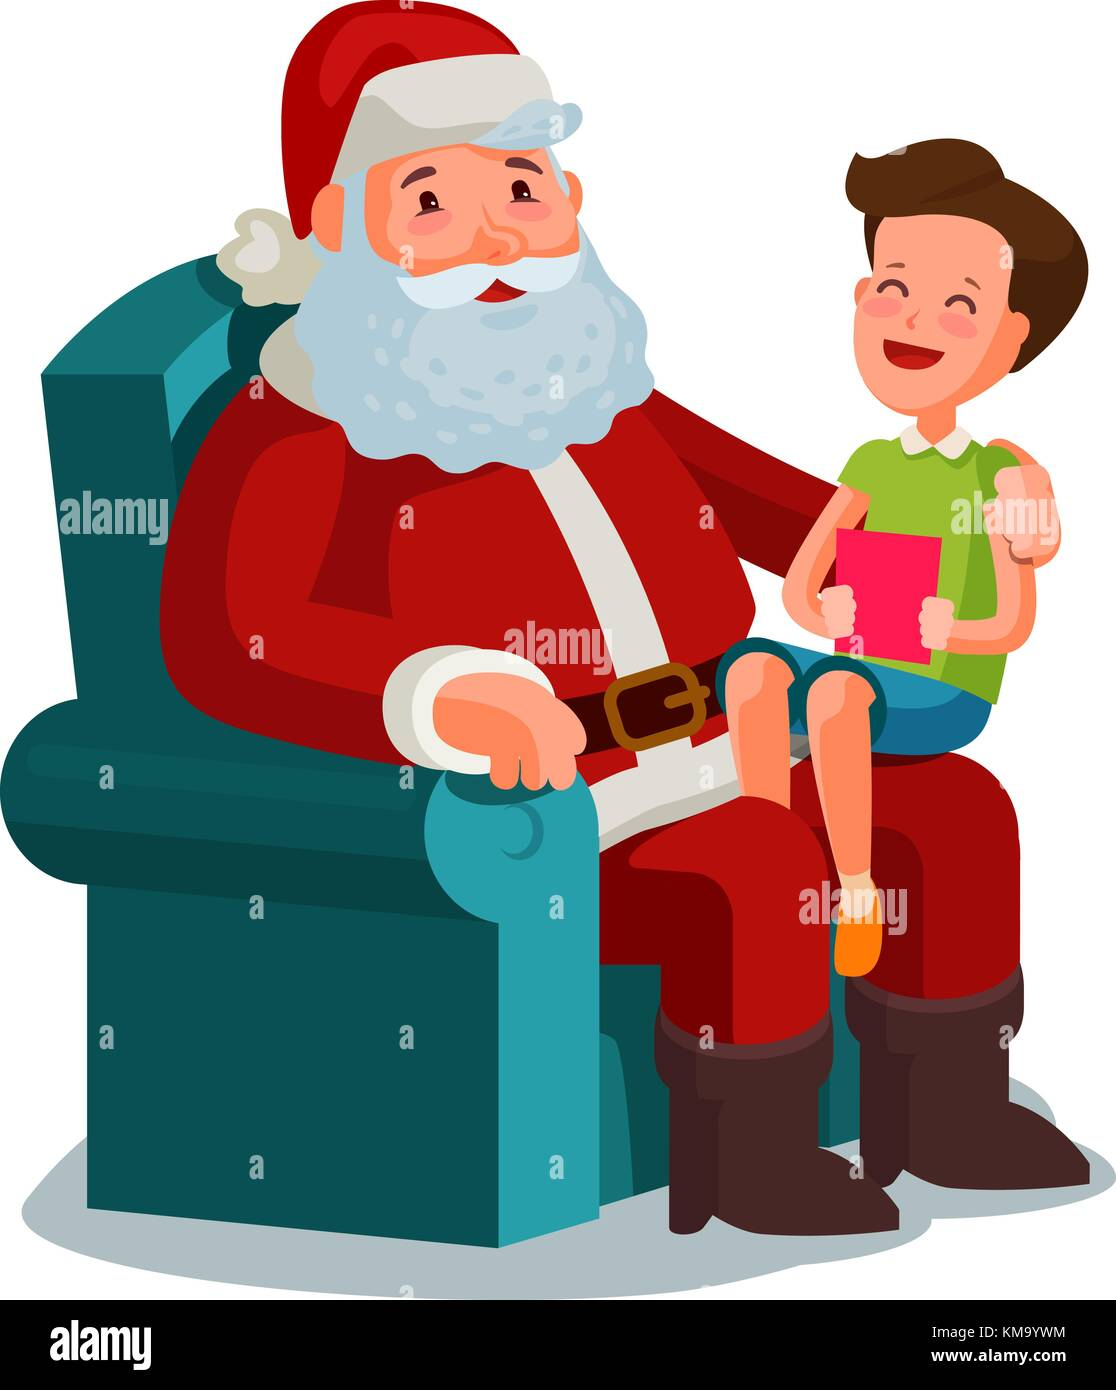 Christmas or New Year. Happy child sitting on lap of Santa Claus. Cartoon vector illustration - Stock Vector